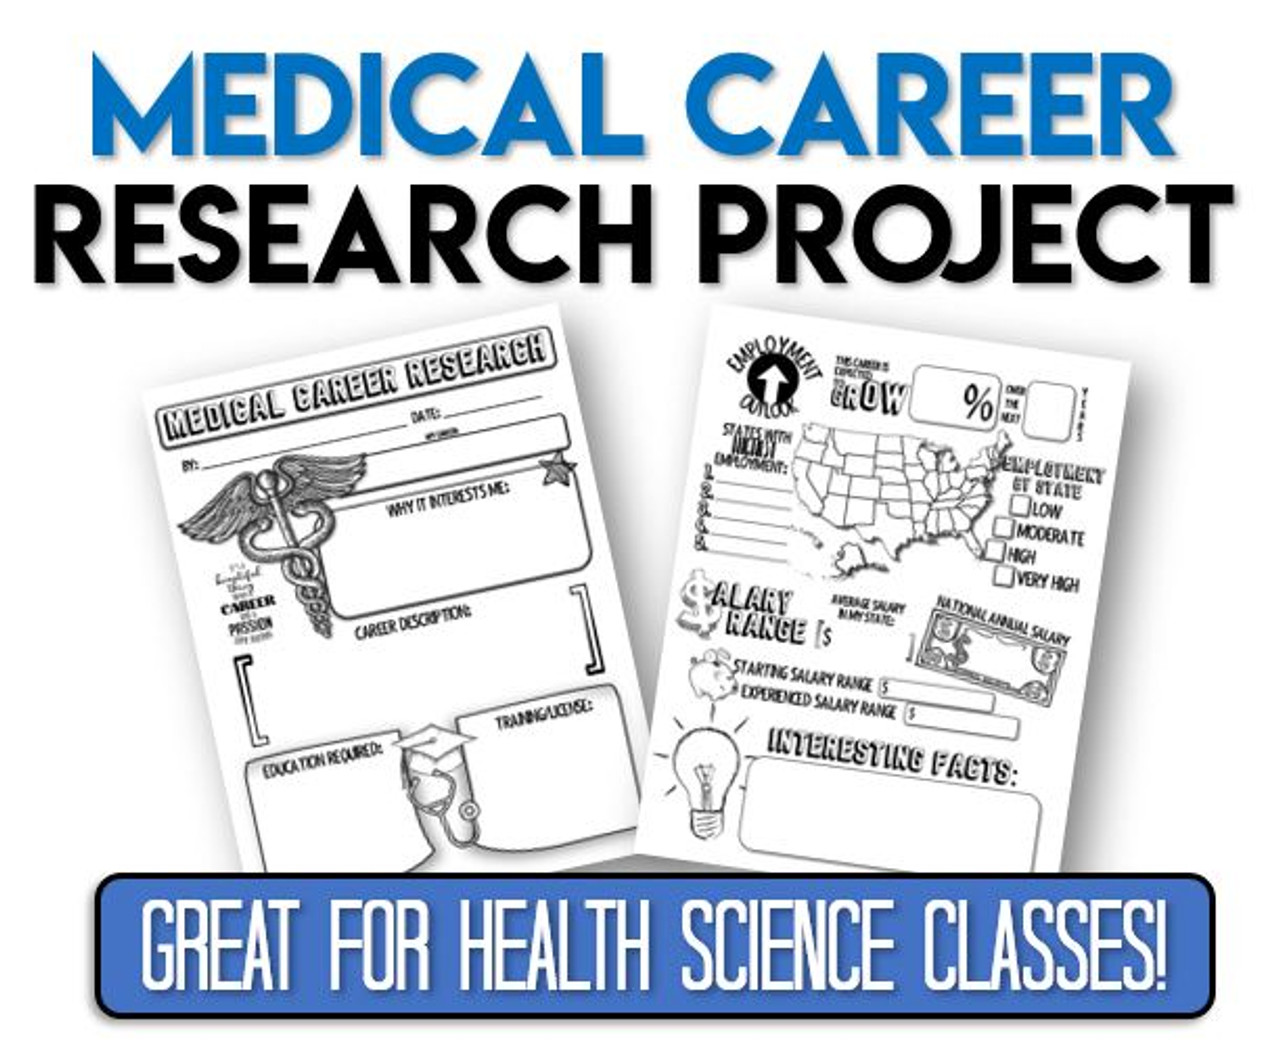 Medical Career Research Project- Great for Health Science Classes! Distance Learning Option!